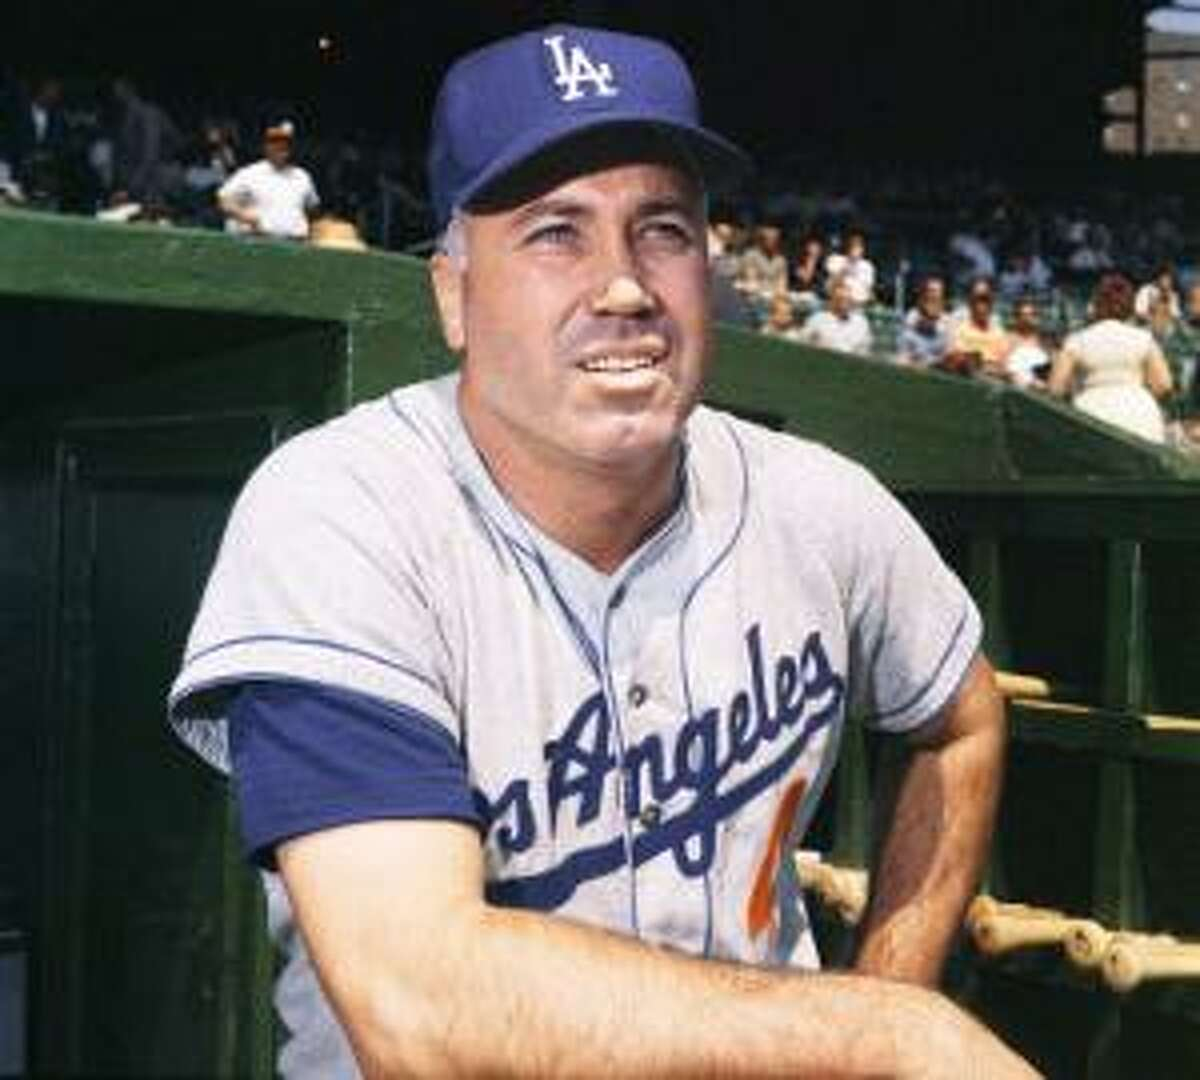 AP In this August 1962, file photo, Los Angeles Dodgers outfielder Duke Snider poses at a baseball game, location not known. Snider, 84, died early Sunday of what the family called natural causes at the Valle Vista Convalescent Hospital in Escondido, Calif. Snider was part of the charmed